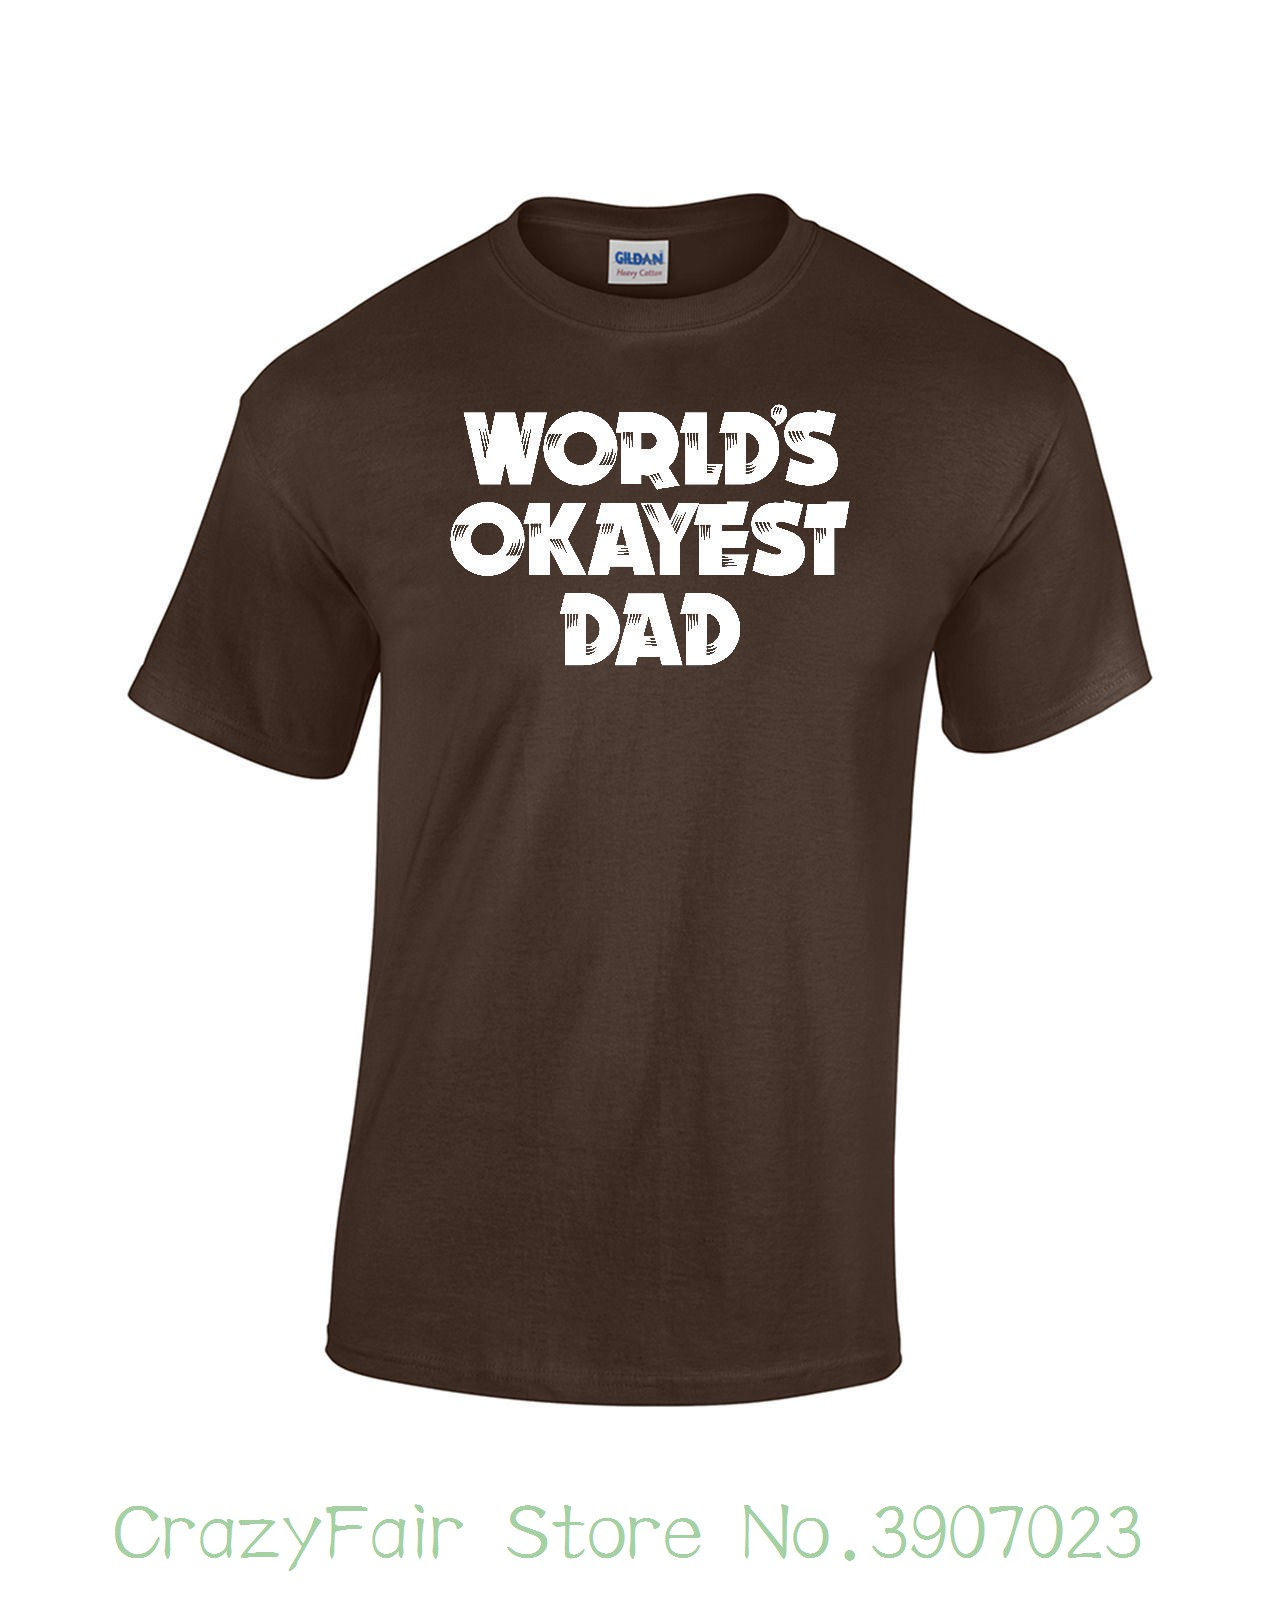 Worlds Okayest Dad T-shirt Fathers Day Funny Unisex Mens Ladies Tee Adult 100% Cotton Customized Tees